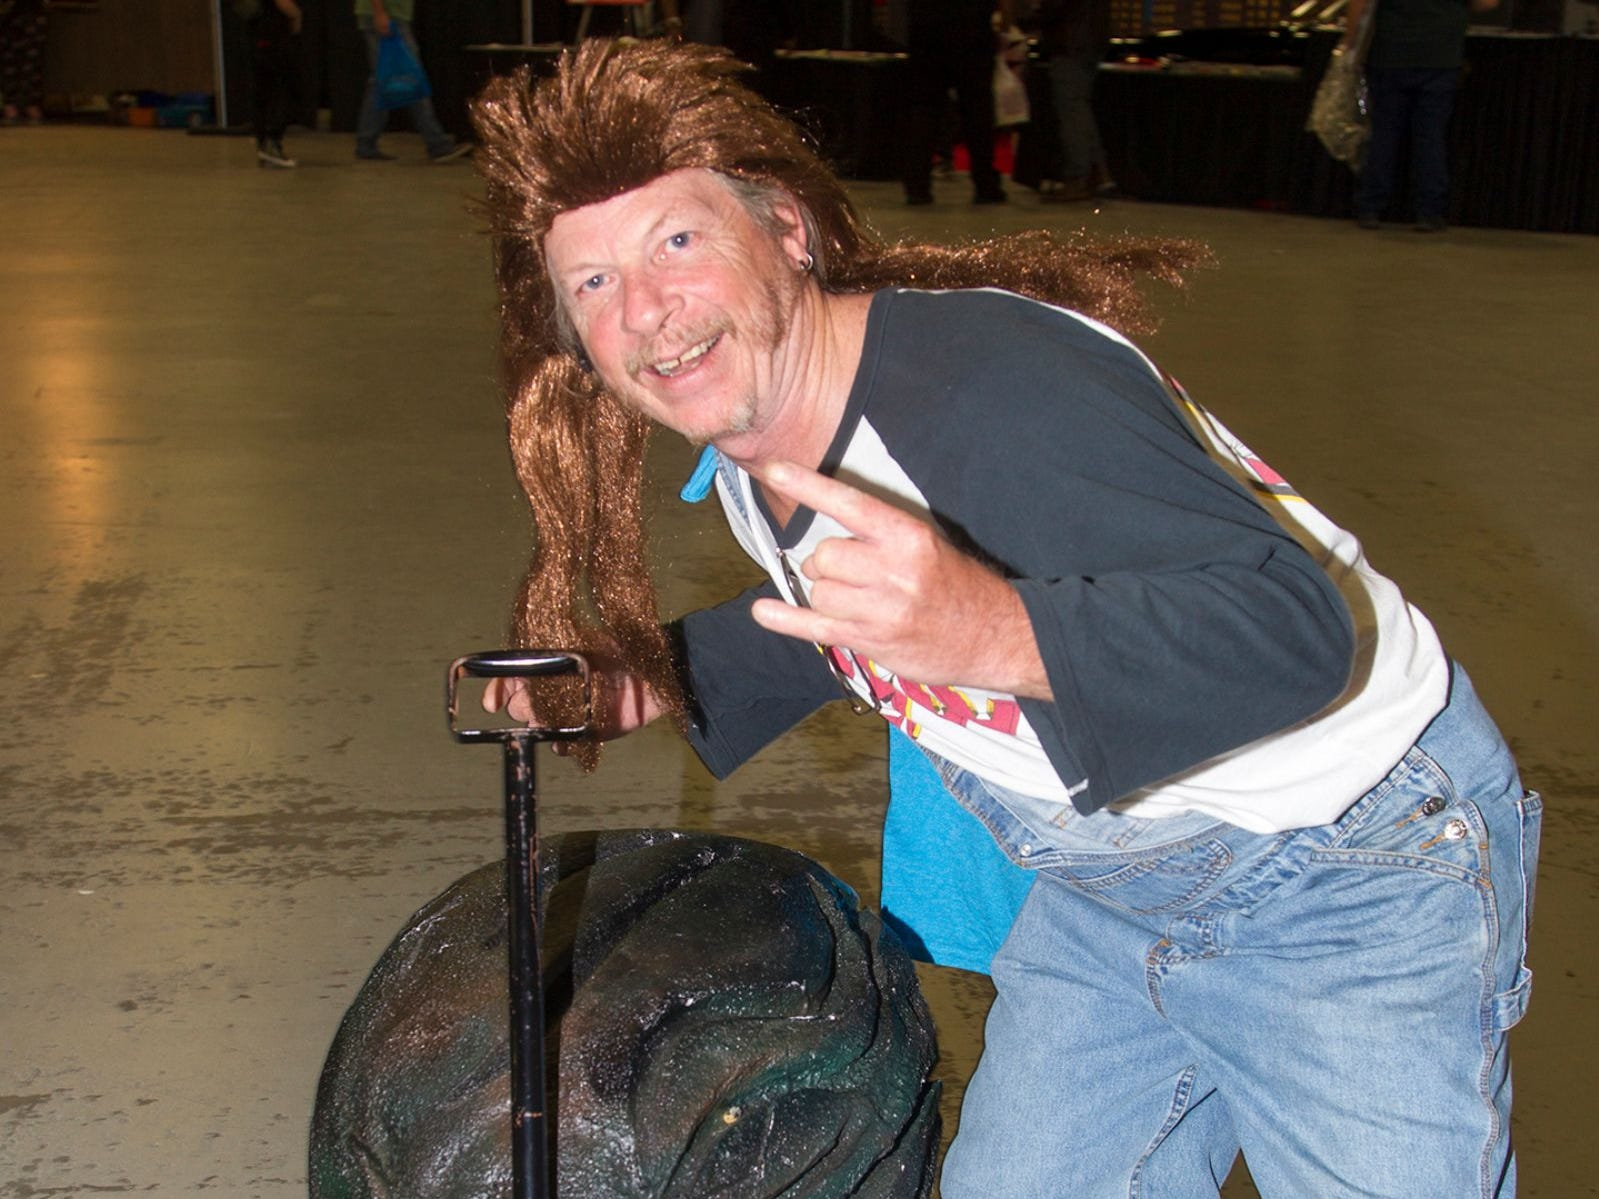 Dave as Joe Dirt. The 2018 Heroes and Villains Fan Fest took place at the New Jersey Convention & Expo Center. 09/09/2018